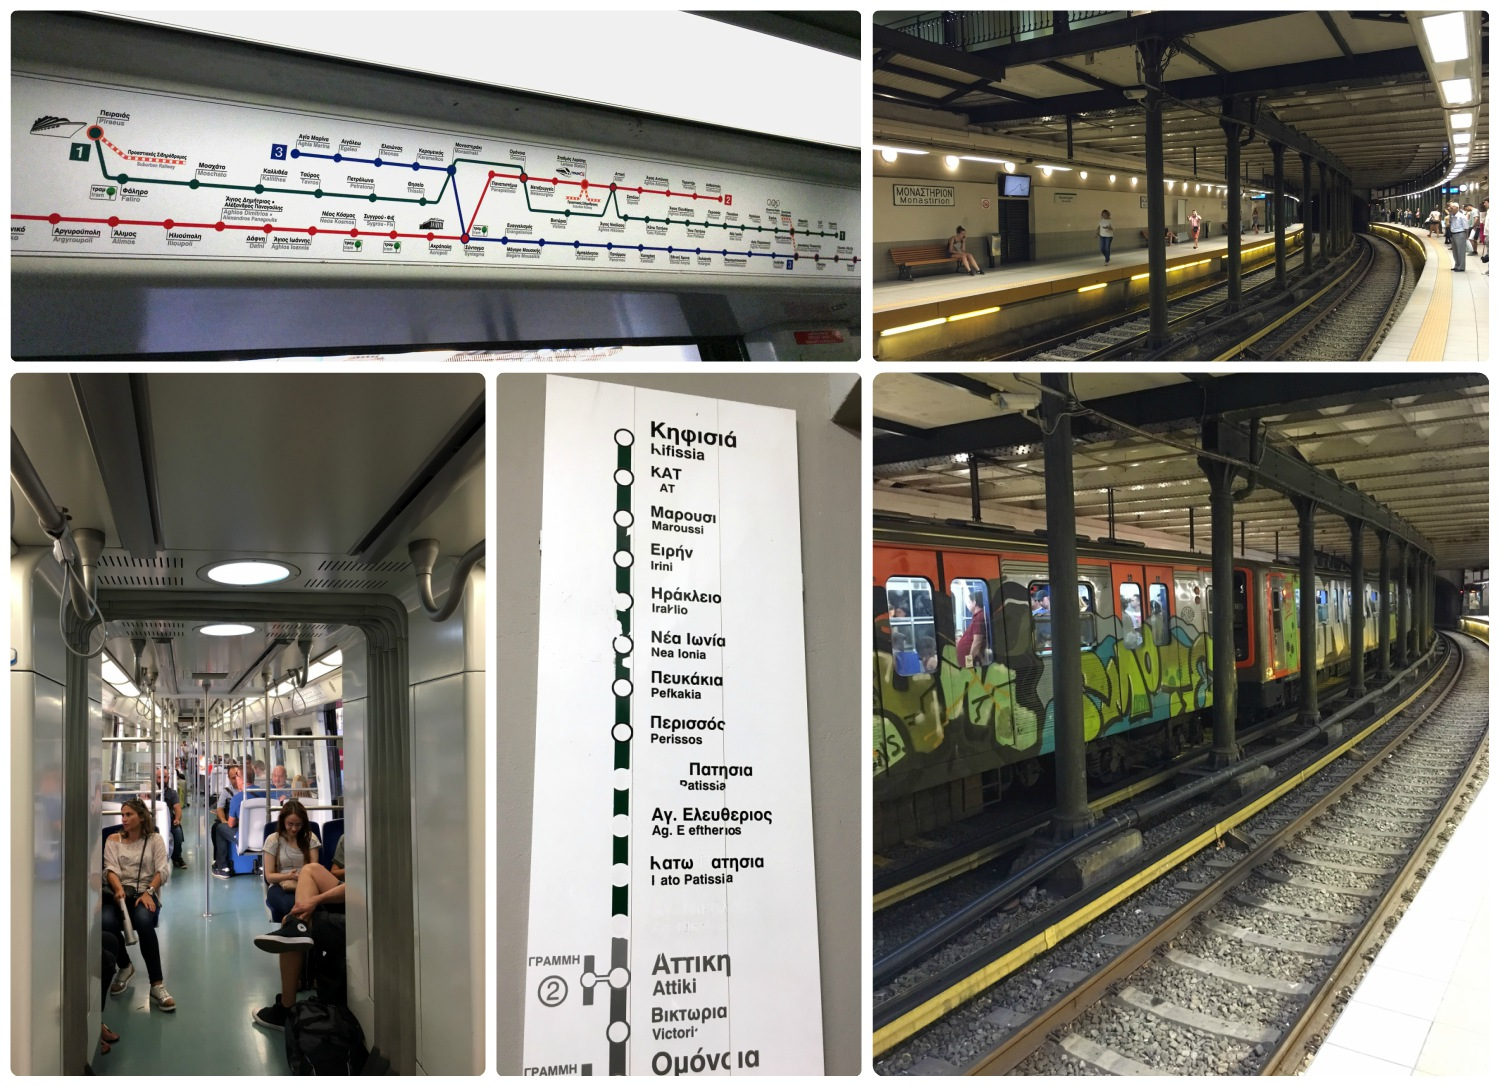 Athens Metro maps, signs, and stops.